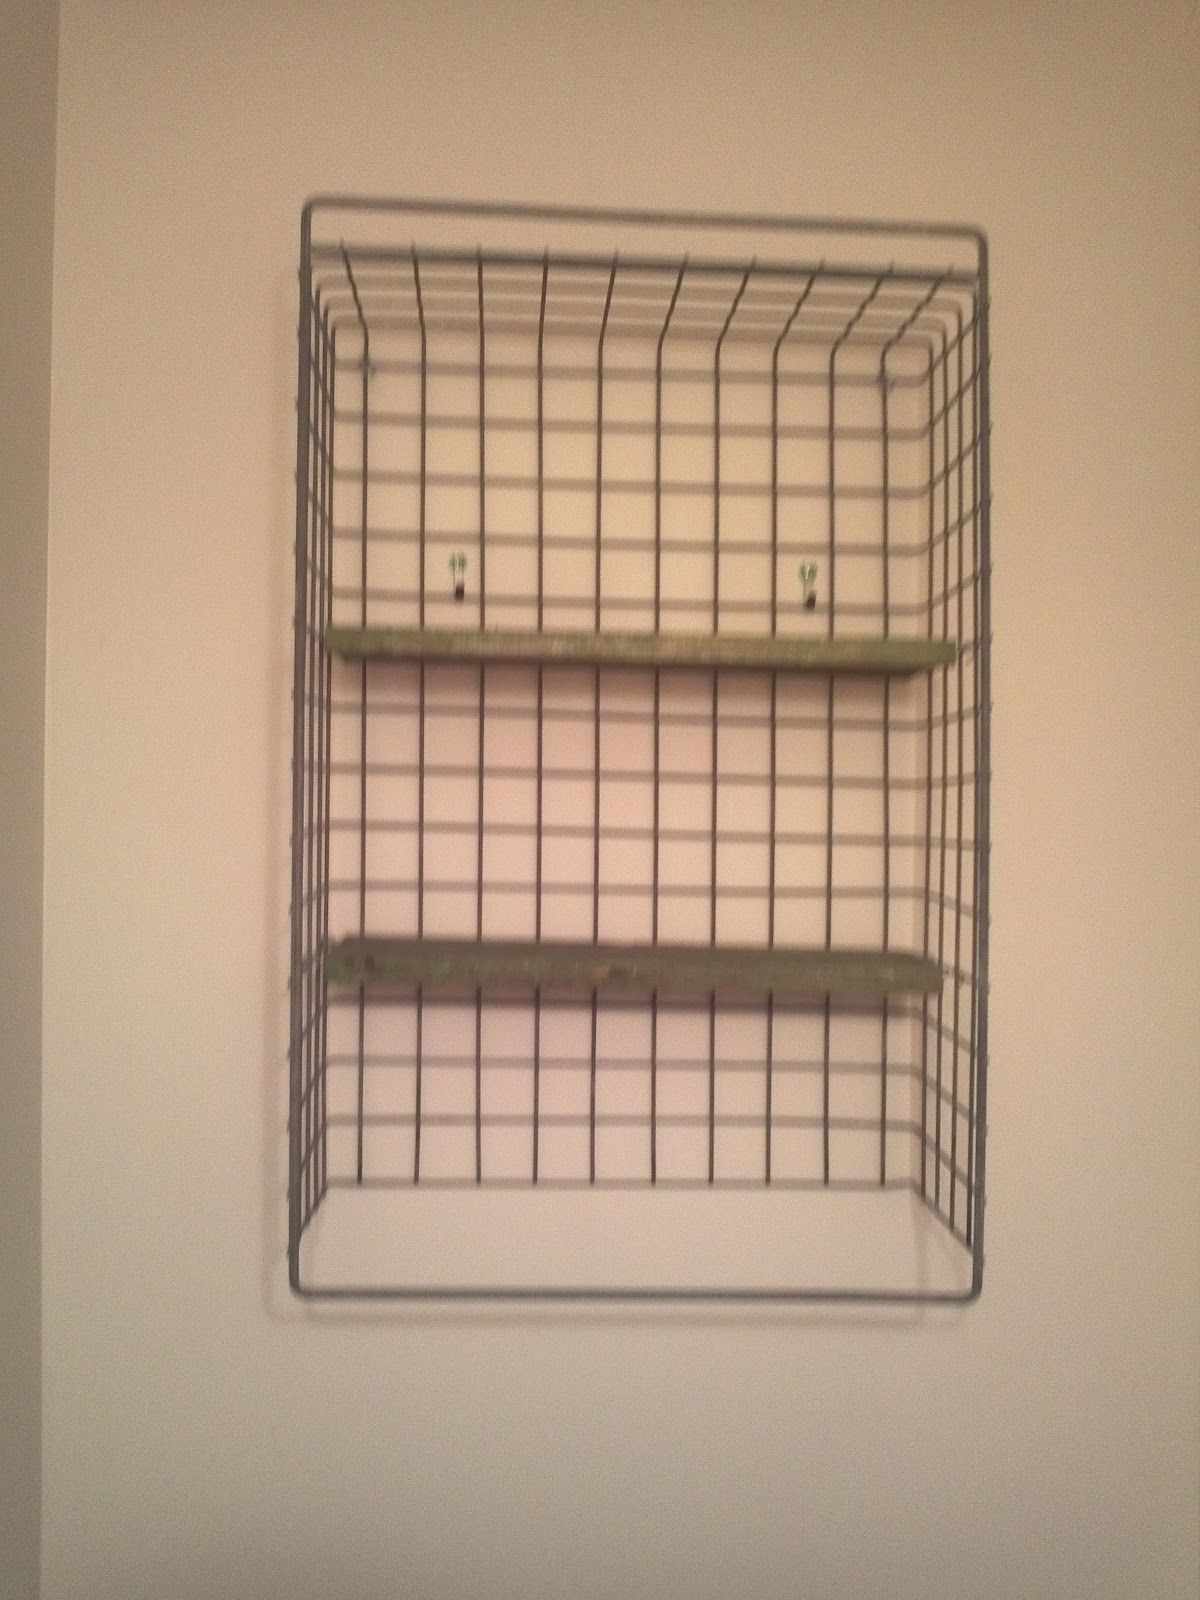 How To Hang Wire Basket On Wall Google Search Baskets On Wall